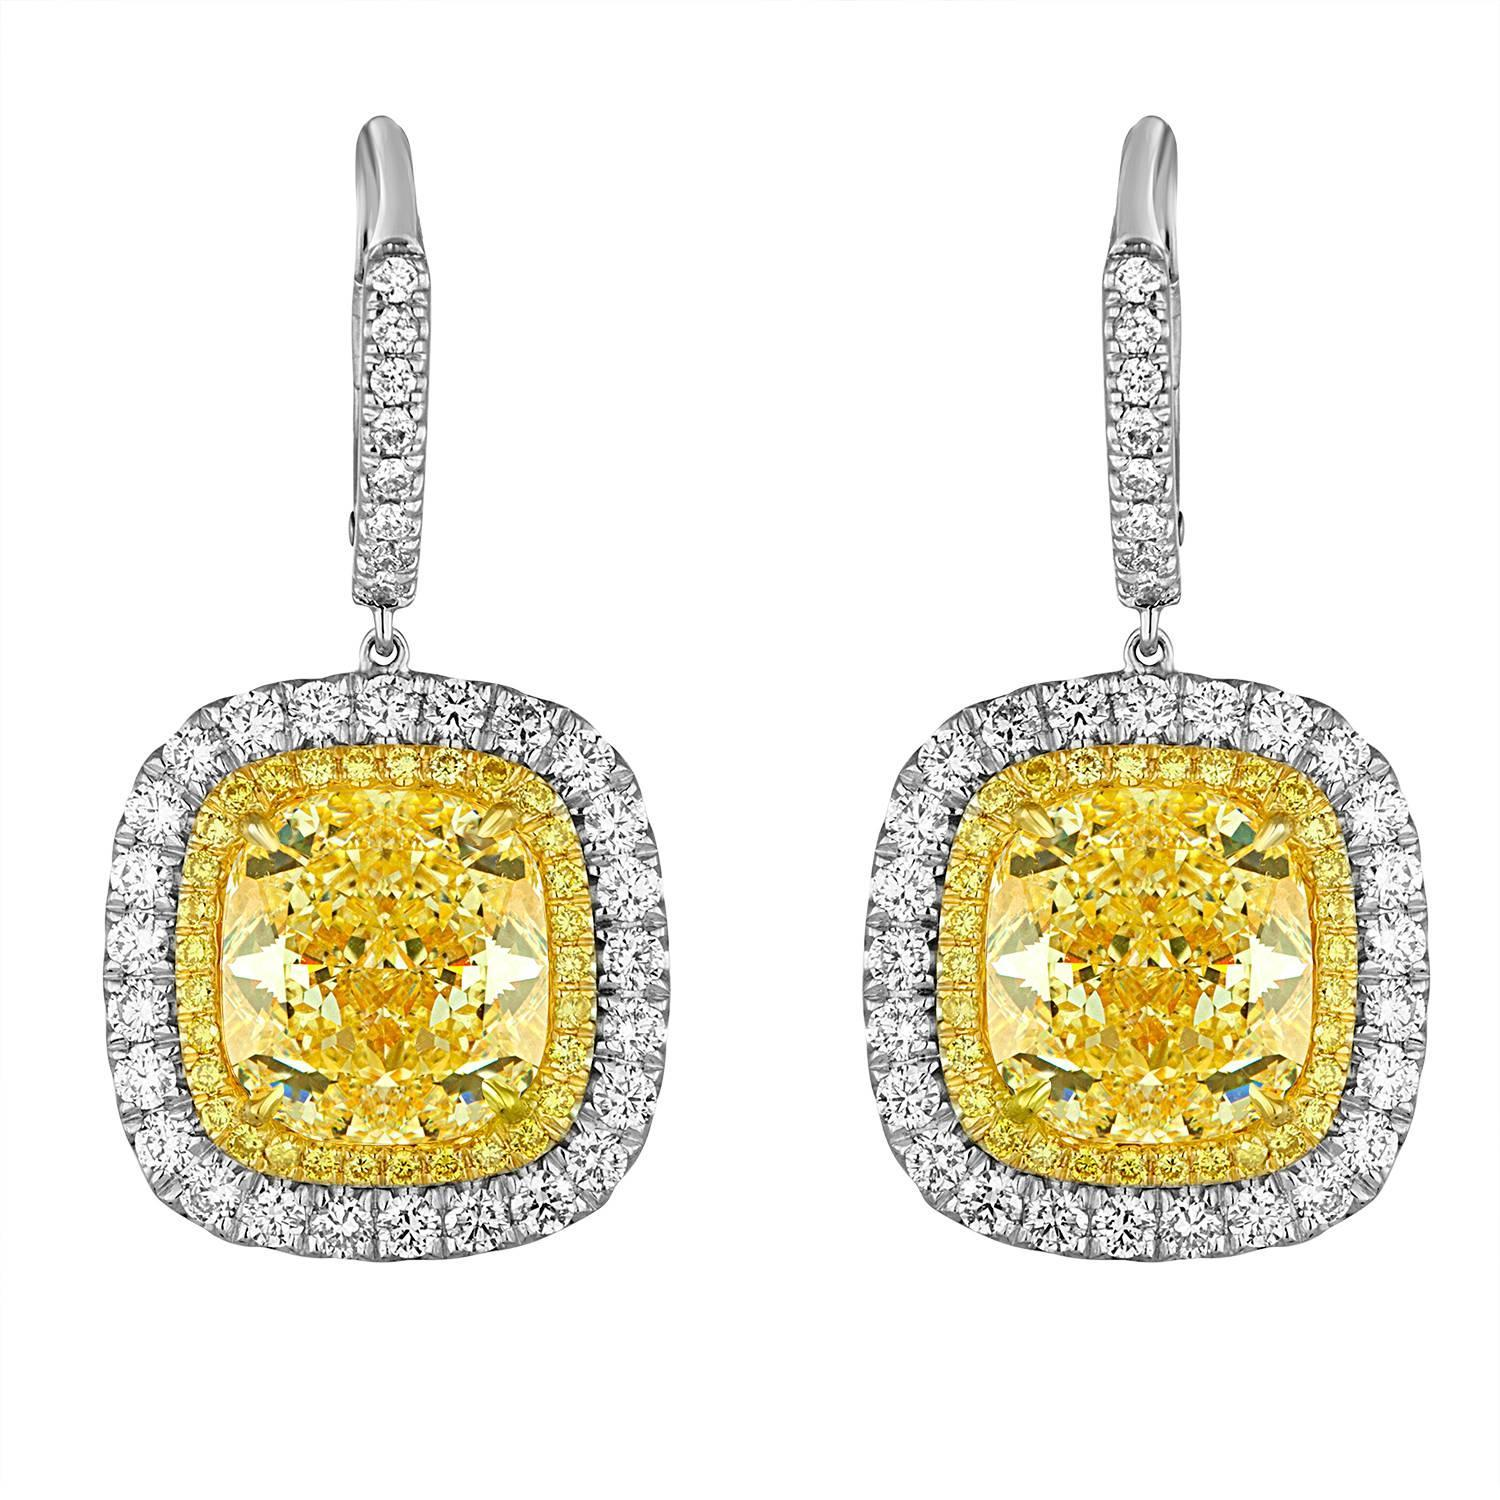 education diamonds loose guides insight diamond earrings an yellow into canary